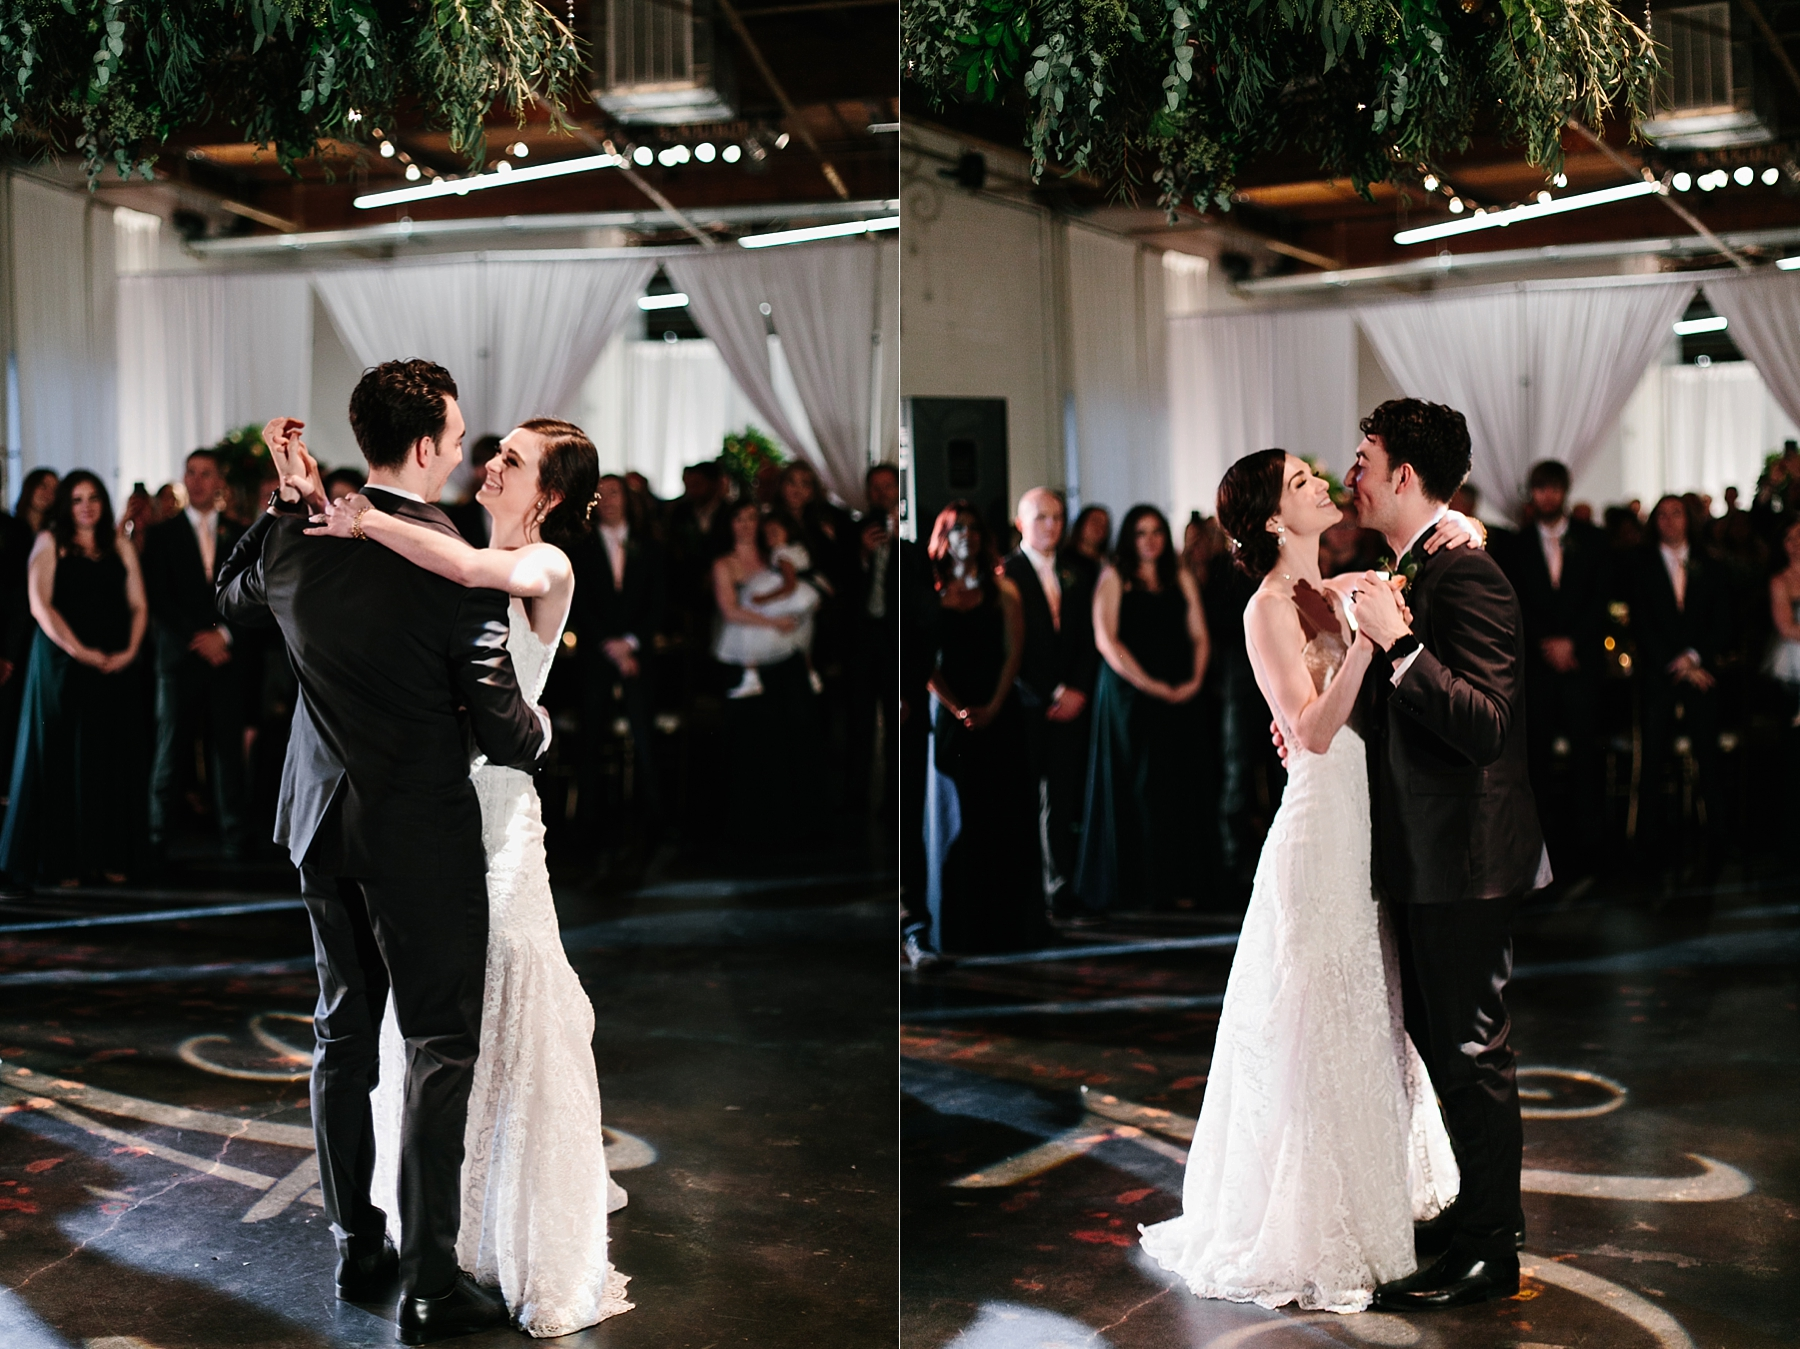 Emily + Caleb _ an elegant, intentional, industrial style wedding with navy + gold accents at 6500 in Dallas, TX by North Texas Wedding Photographer Rachel Meagan Photography _ 137